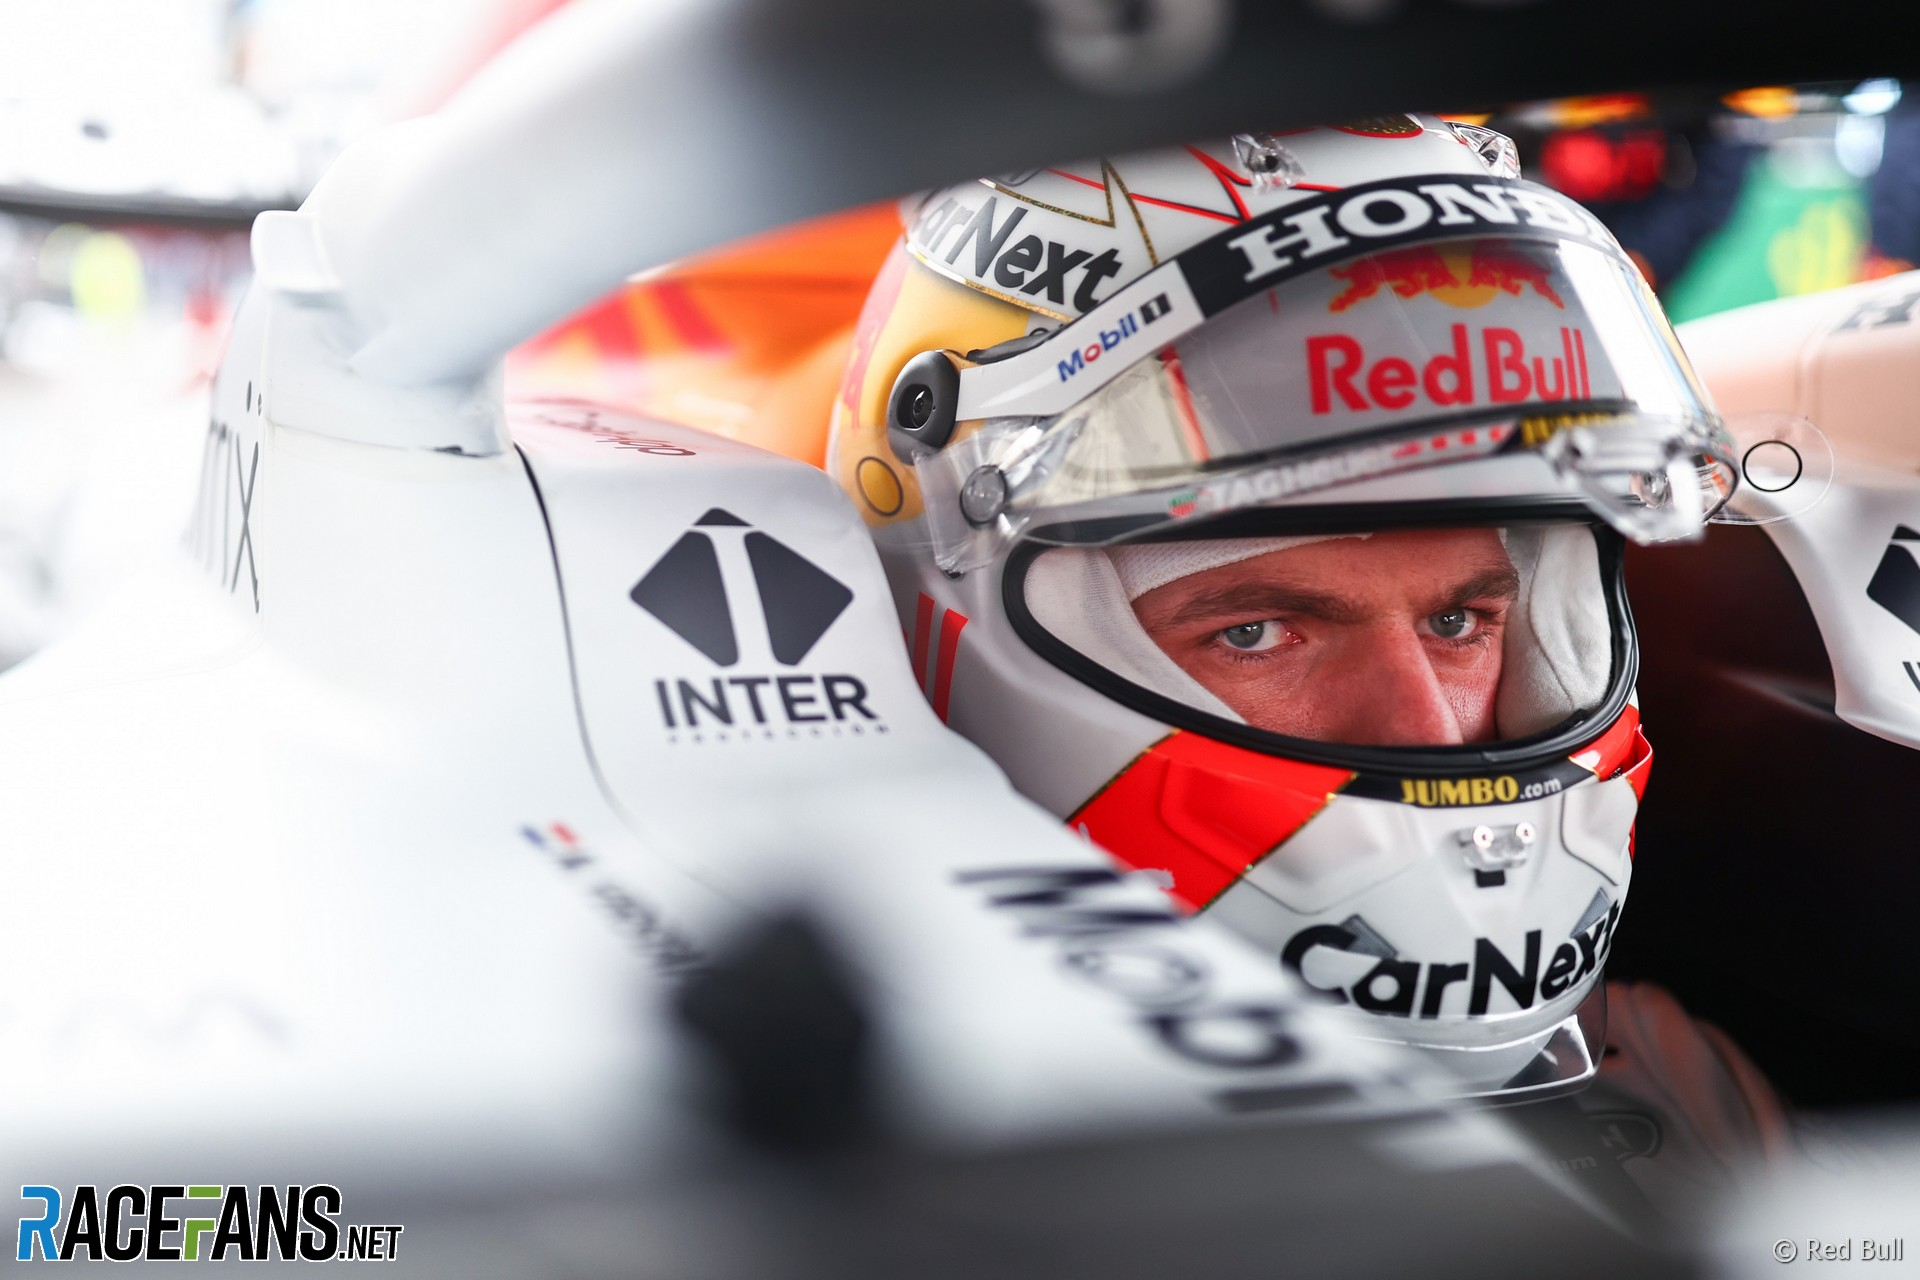 """F1: Verstappen refuses to join in """"fake"""" Drive to Survive series · RaceFans"""